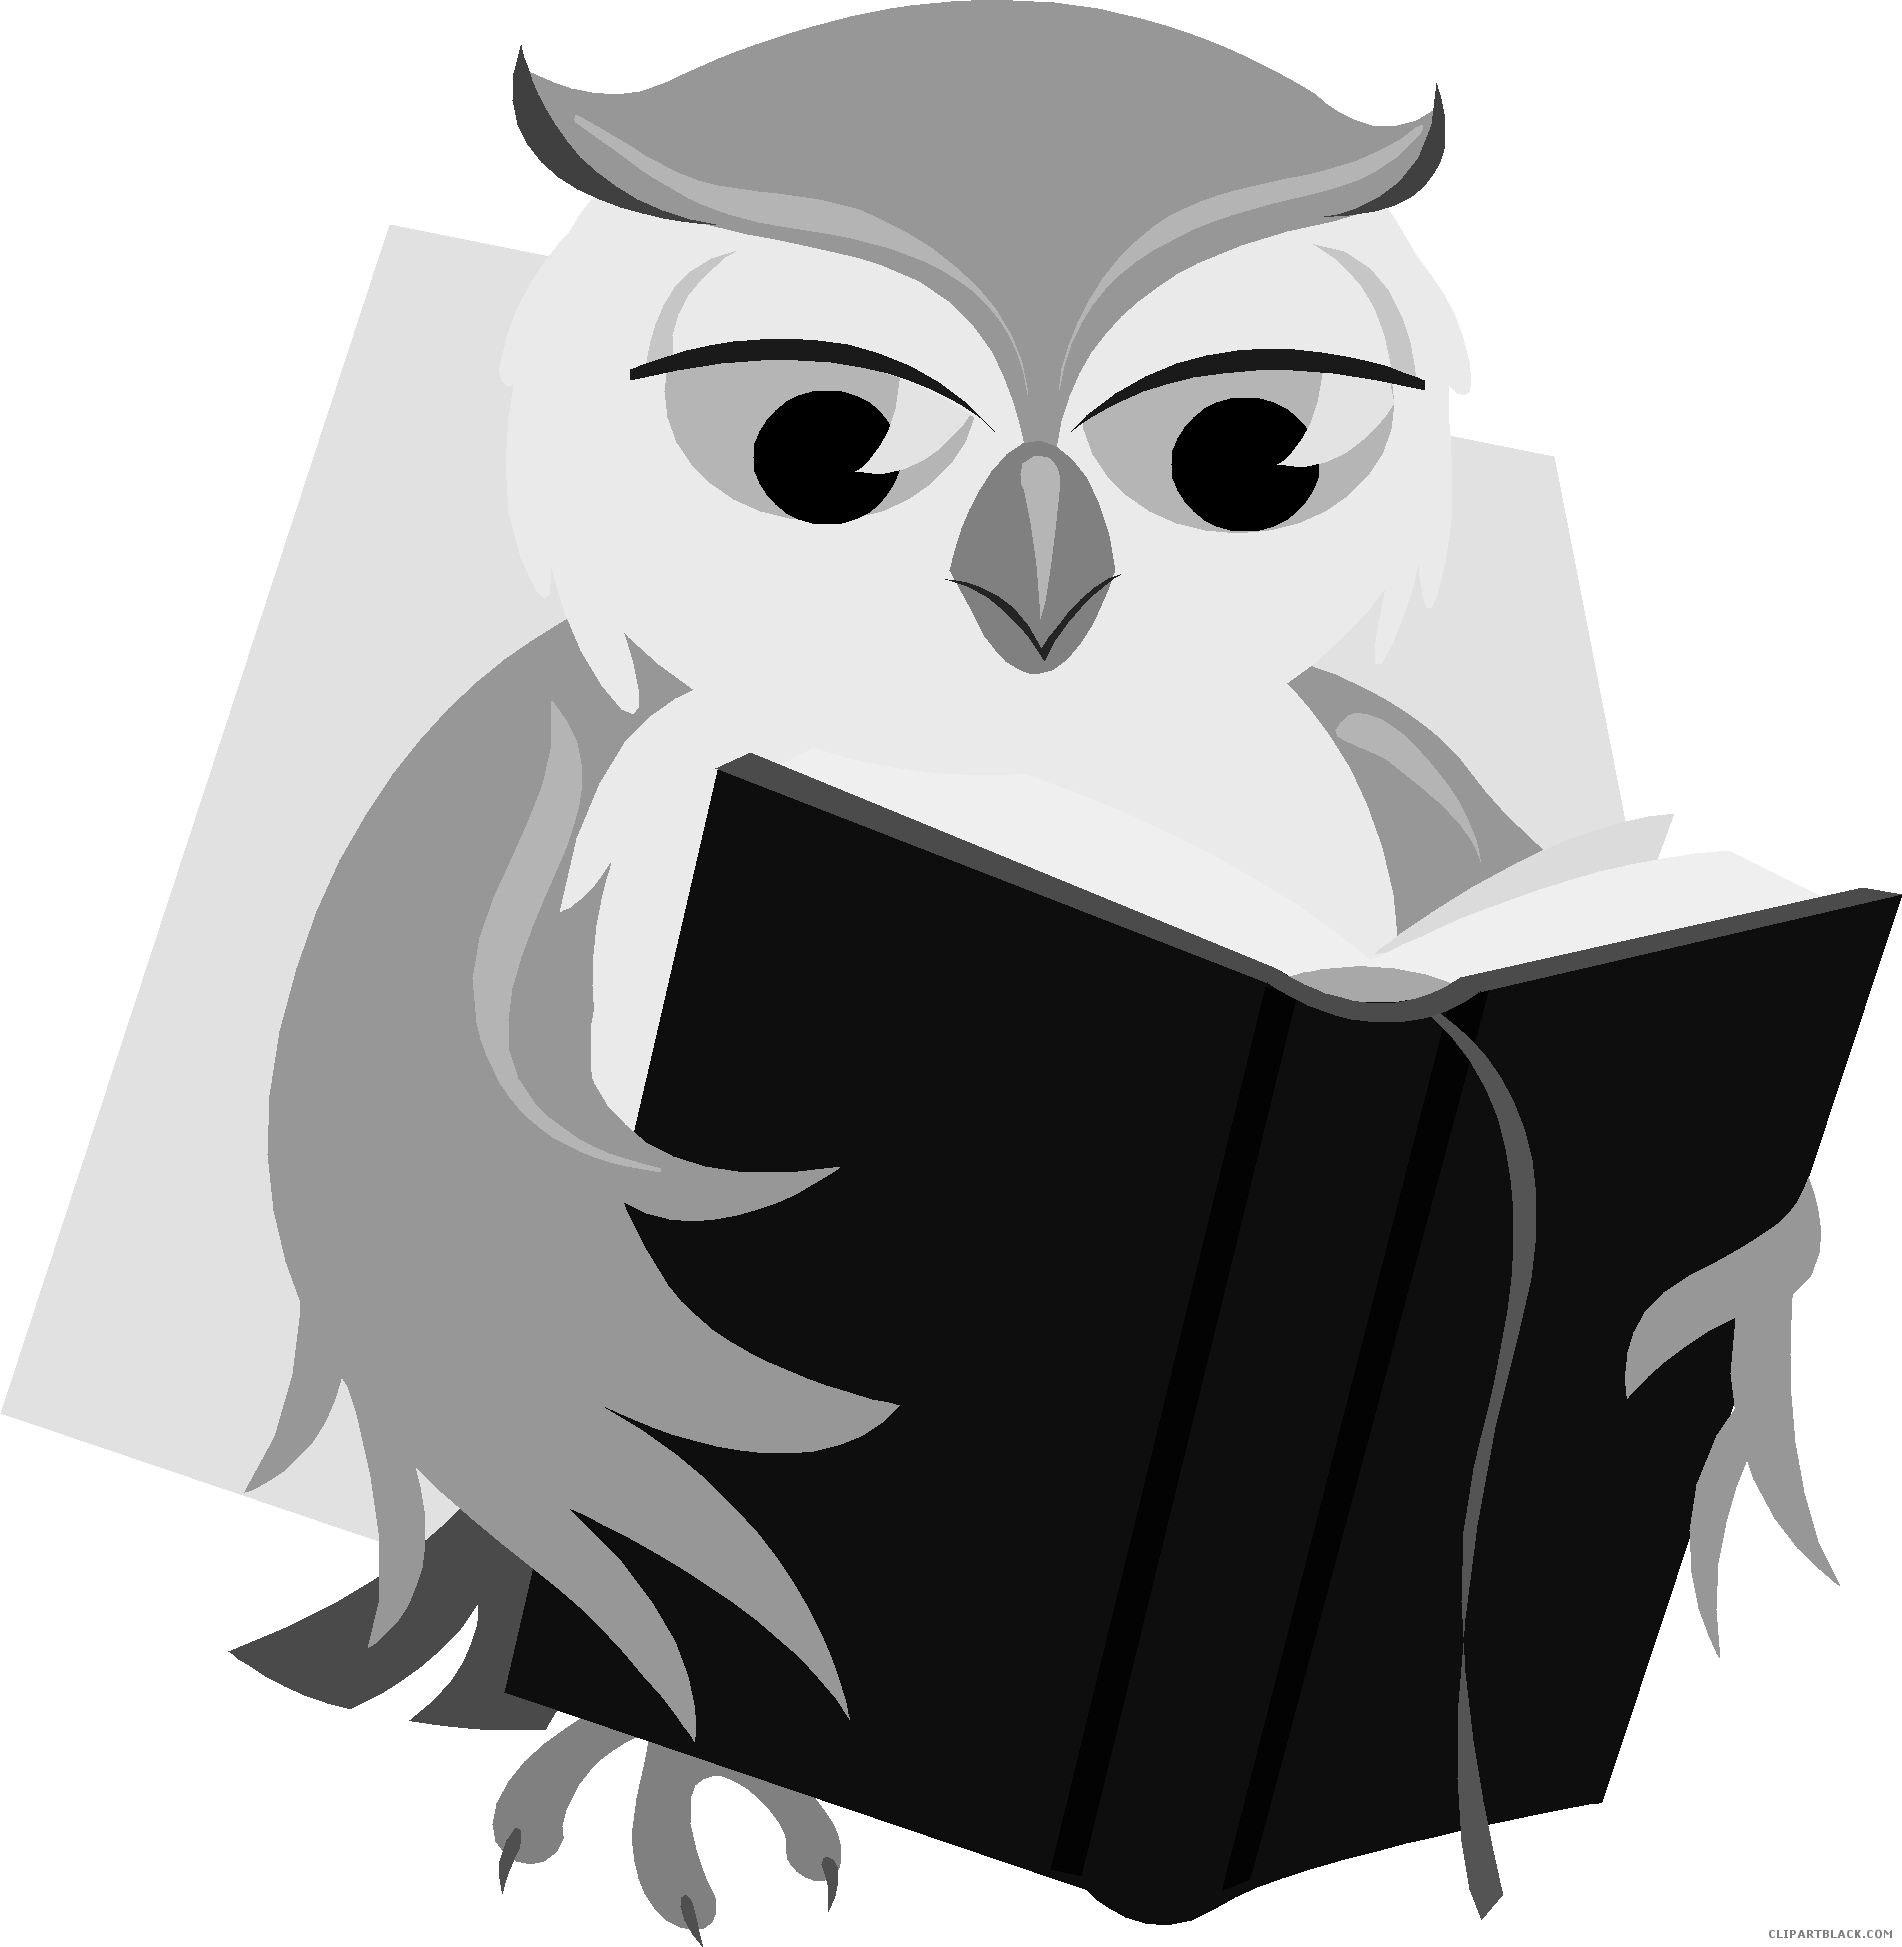 Owl reading book clipart svg freeuse download Owl with Book Clipart - ClipartBlack.com svg freeuse download